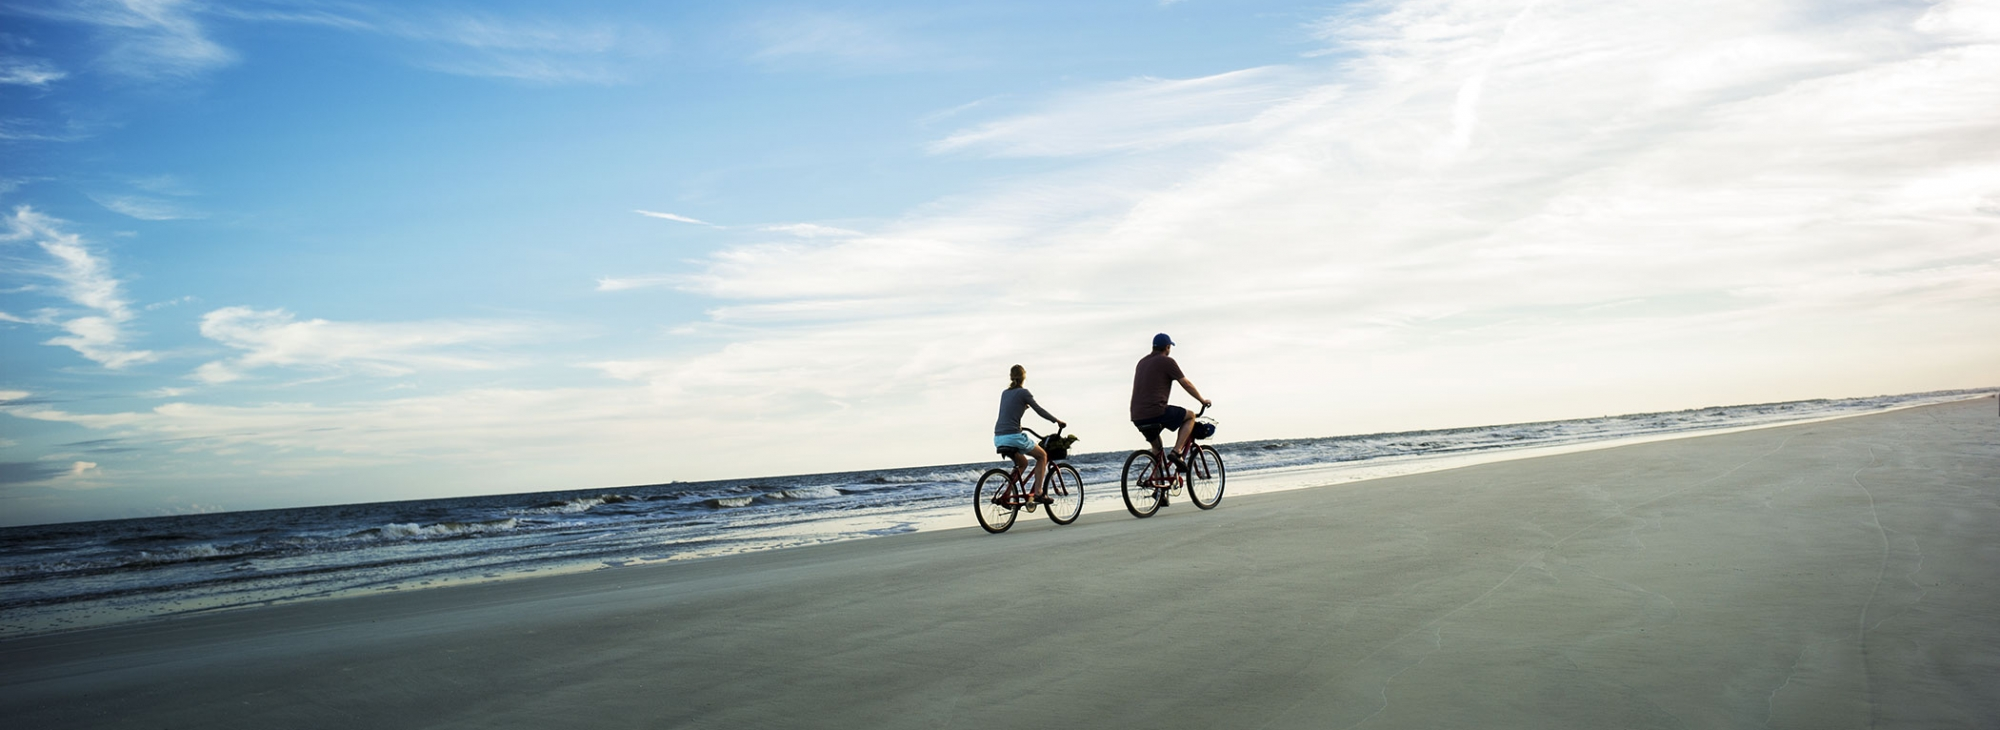 A couple riding bicycles along the beach